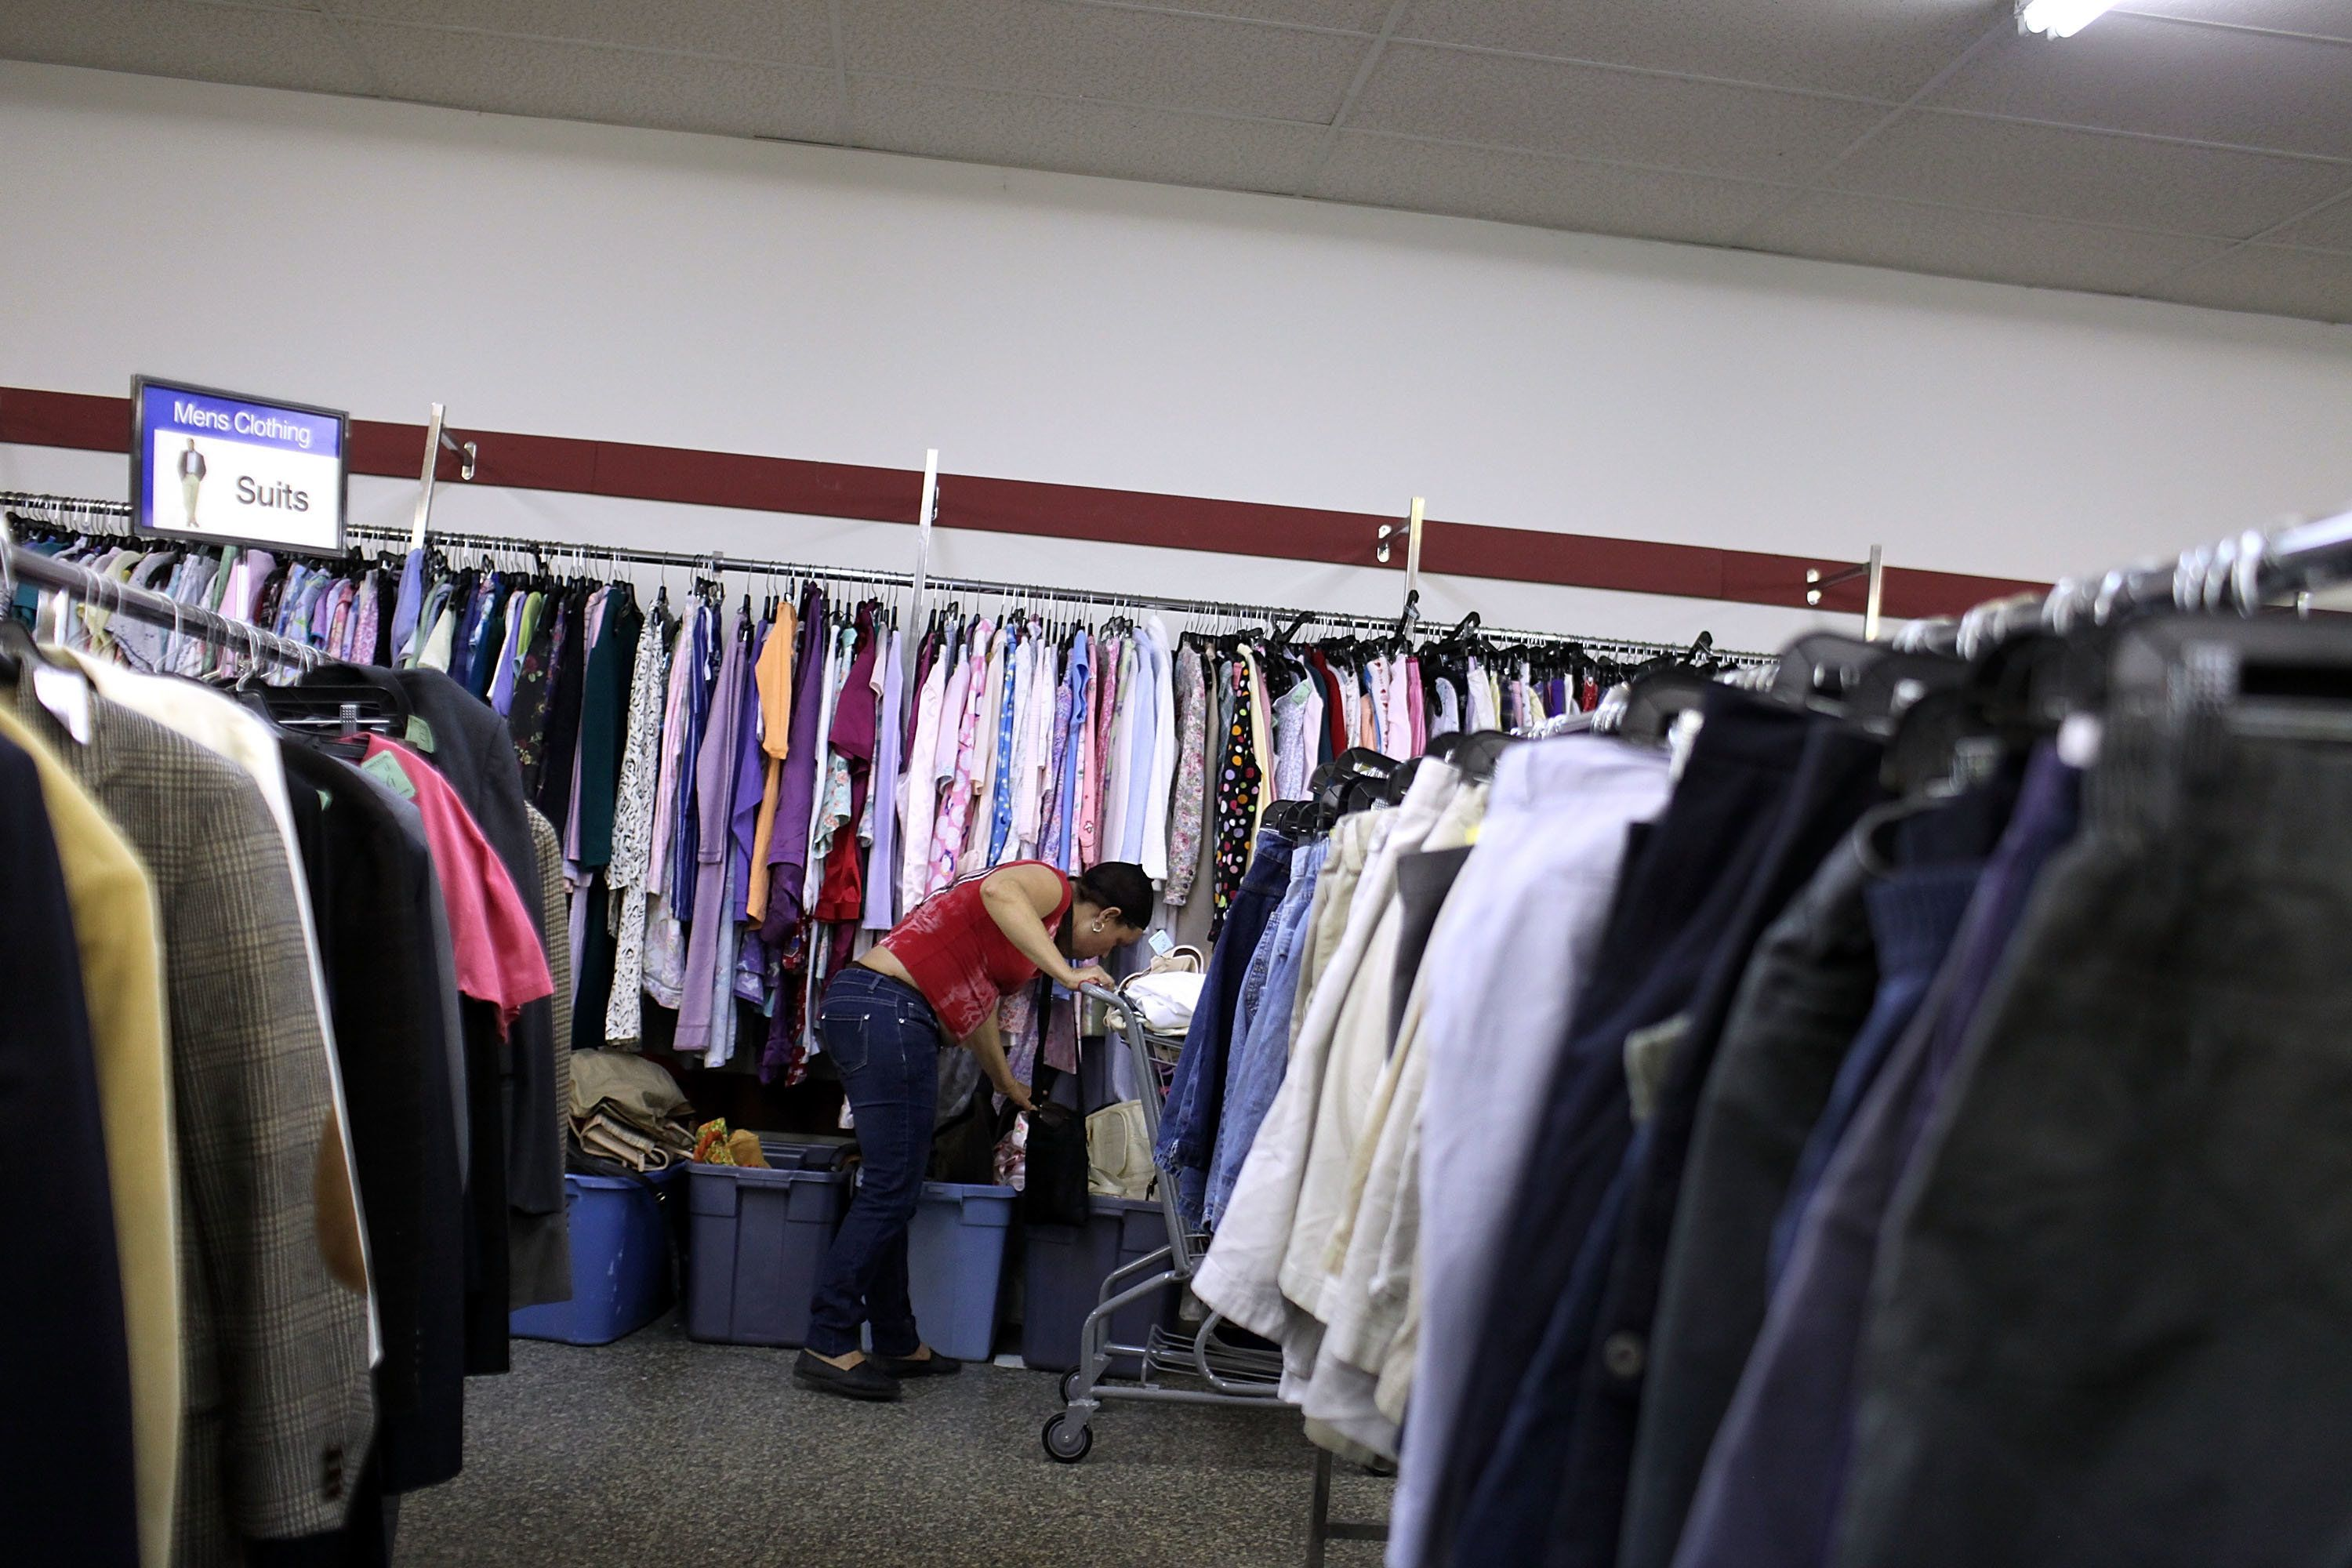 A woman shops at a Salvation Army thrift store in Utica, New York. Online clothing resale outlets like ThredUP hope to offer